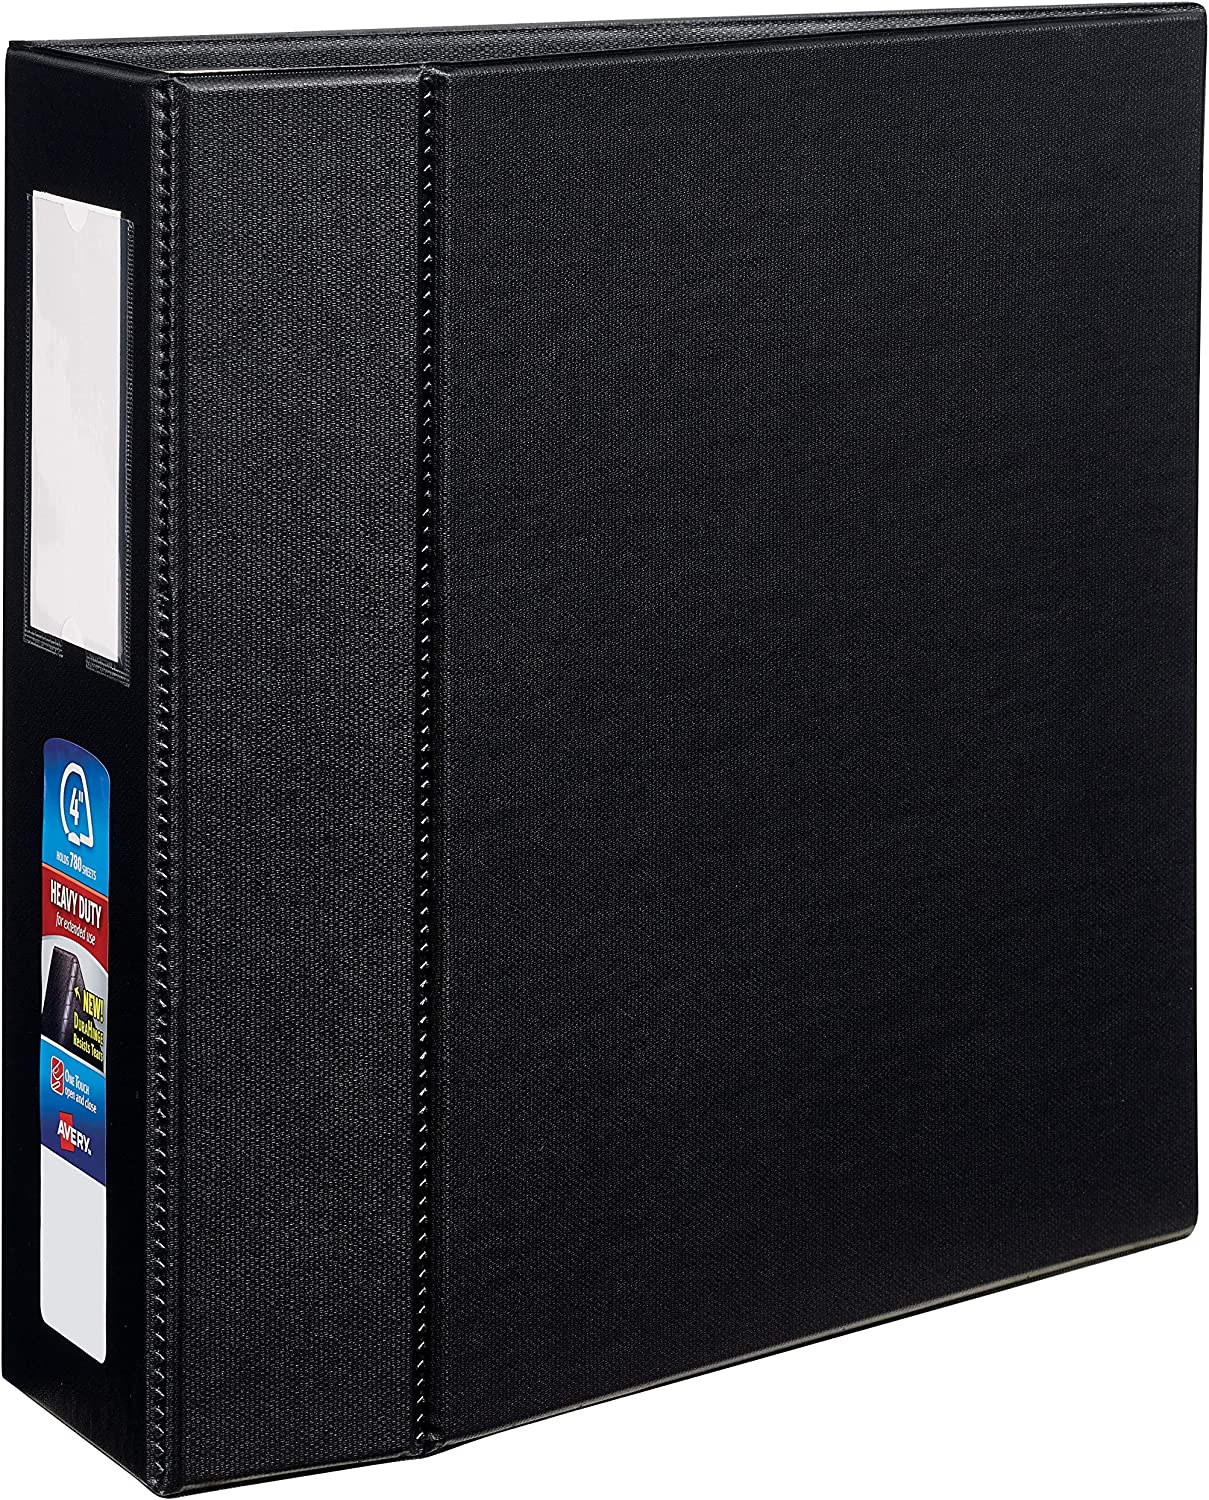 Avery Max 65% OFF Heavy-Duty Binder with 4 inch EZD Ranking TOP2 7 Black Ring Touch One